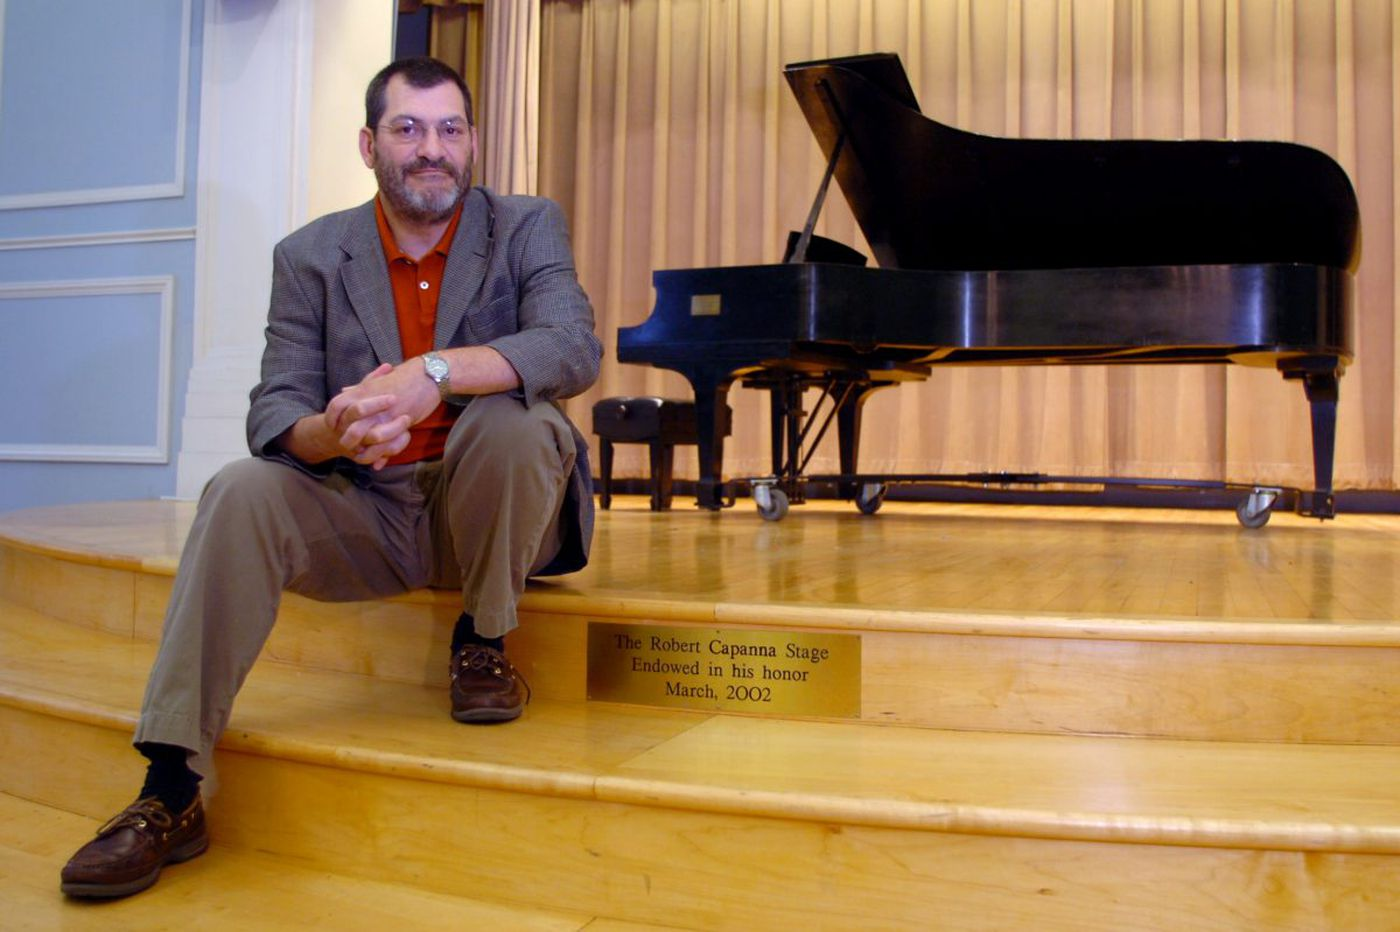 Robert Capanna, 65, composer and former executive director of Settlement Music School